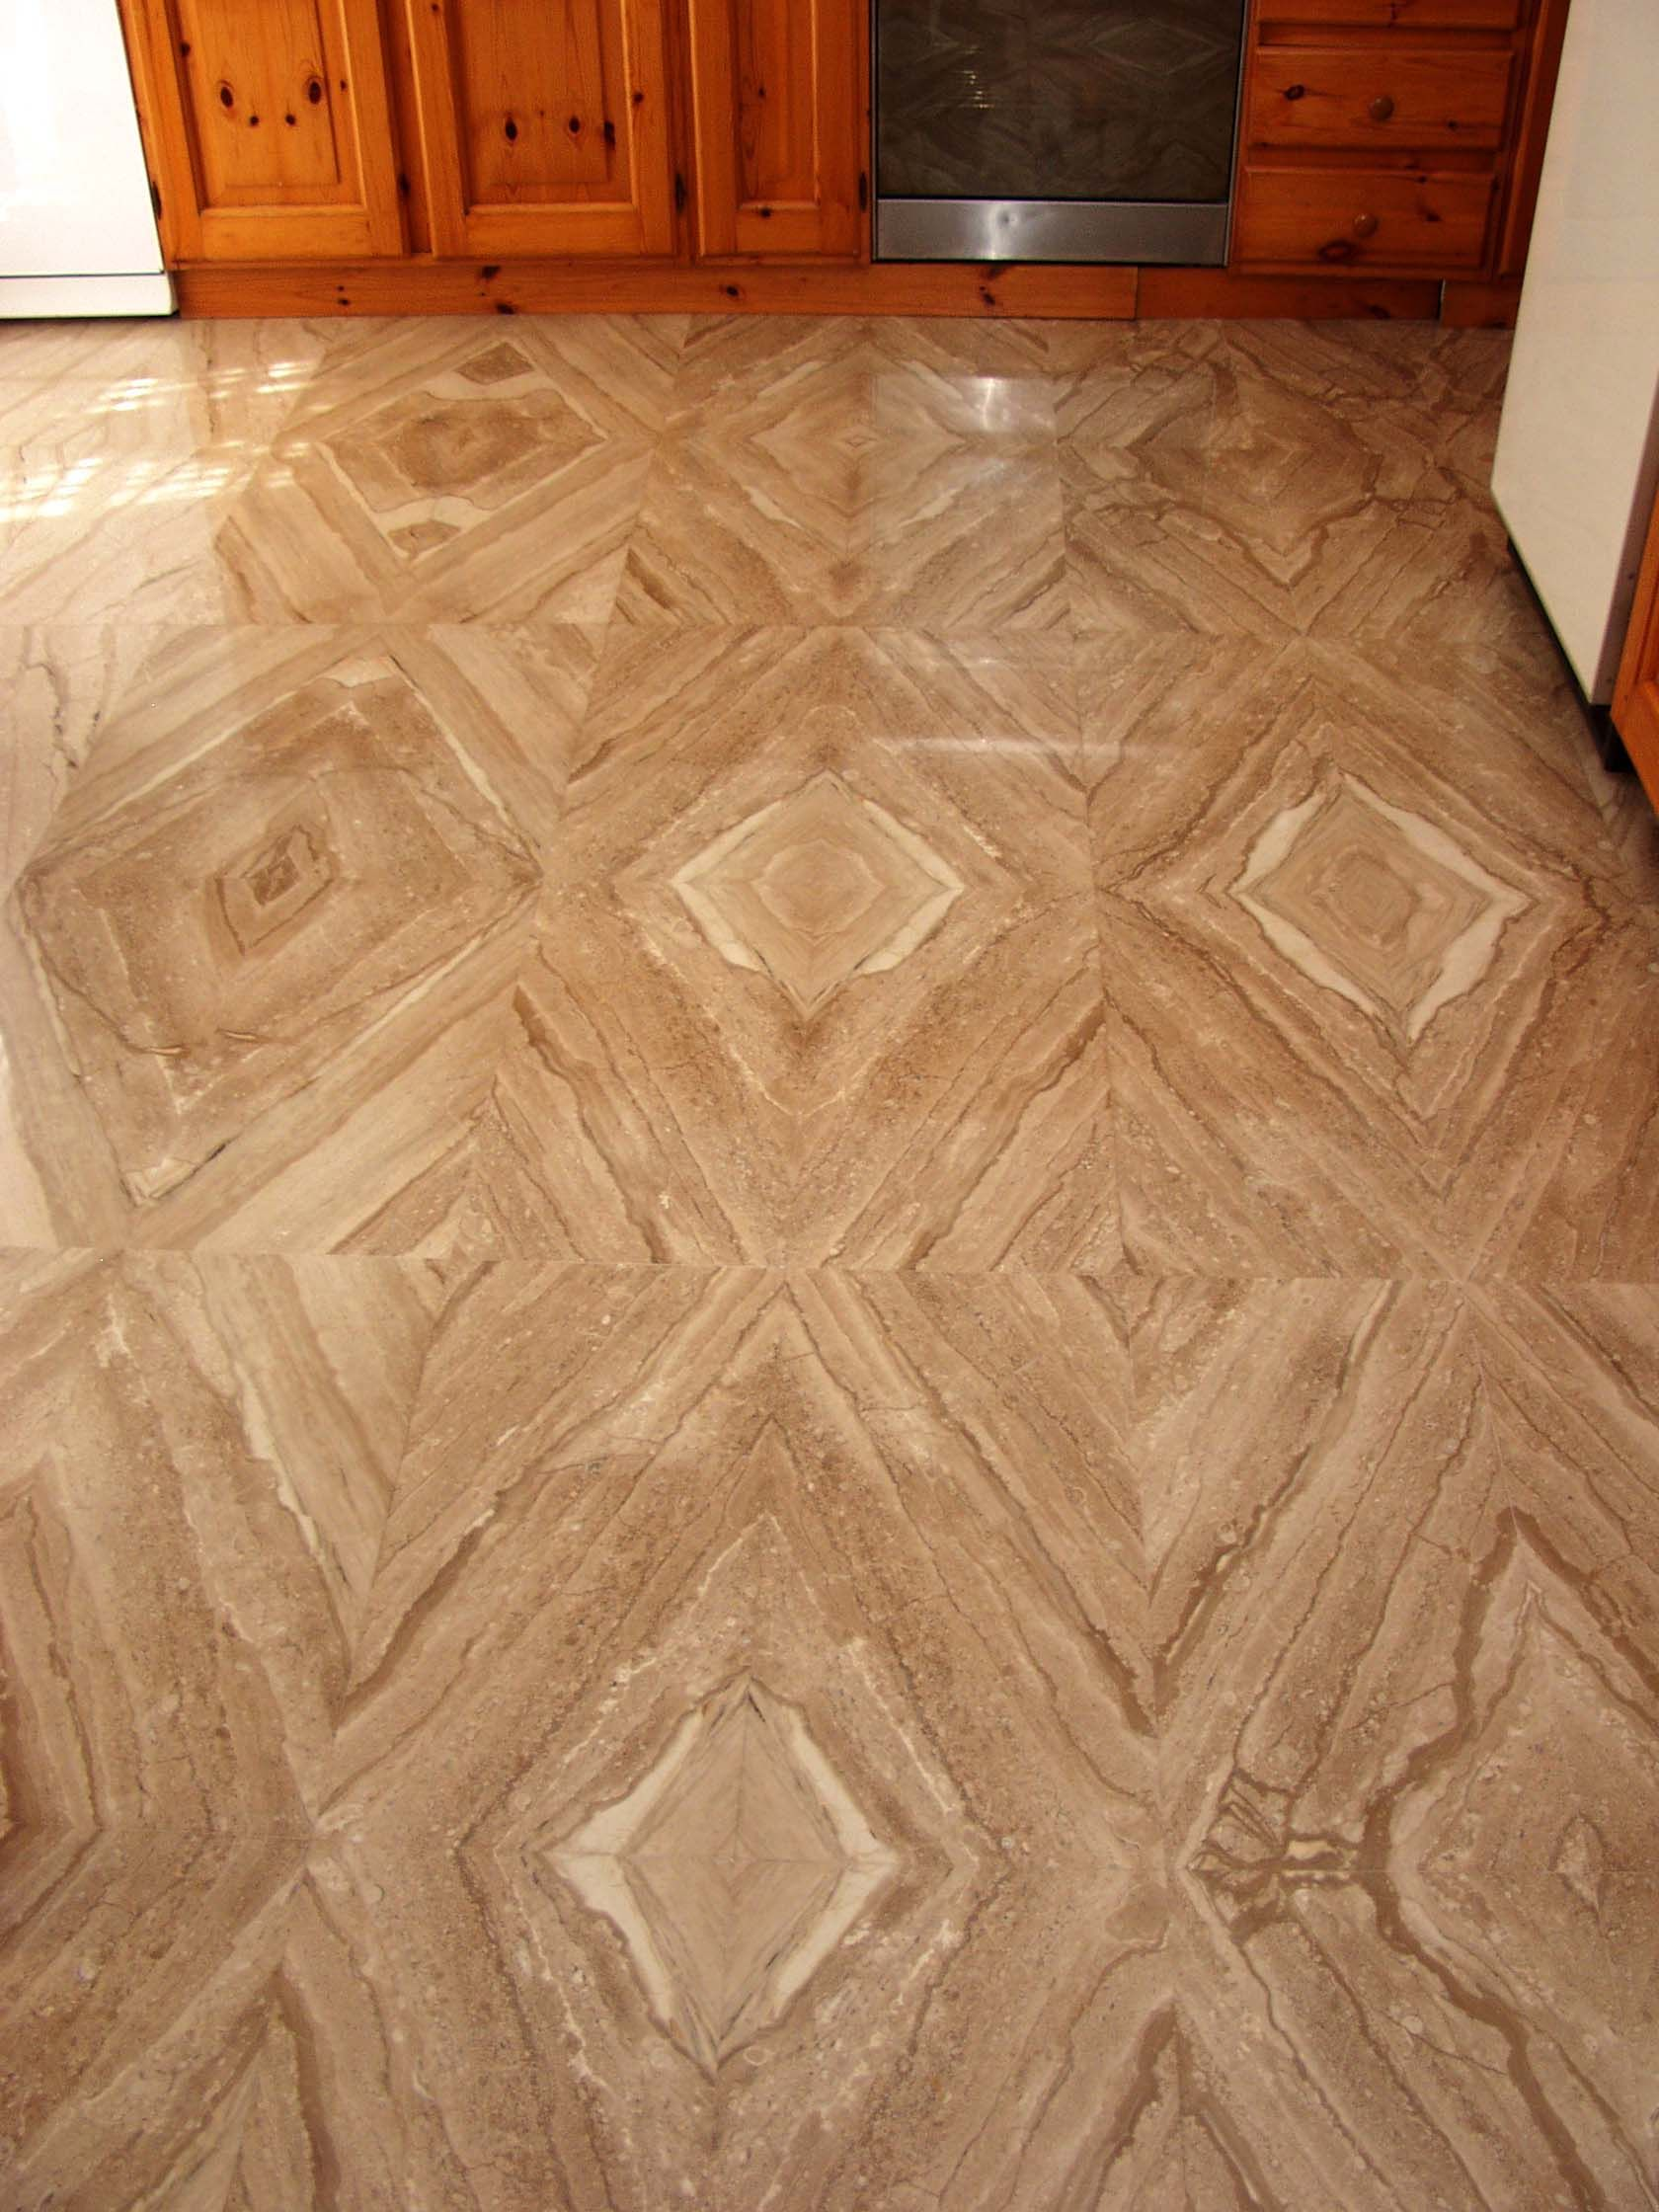 Daino Reale Marble Floor Cut On 45 Erfly